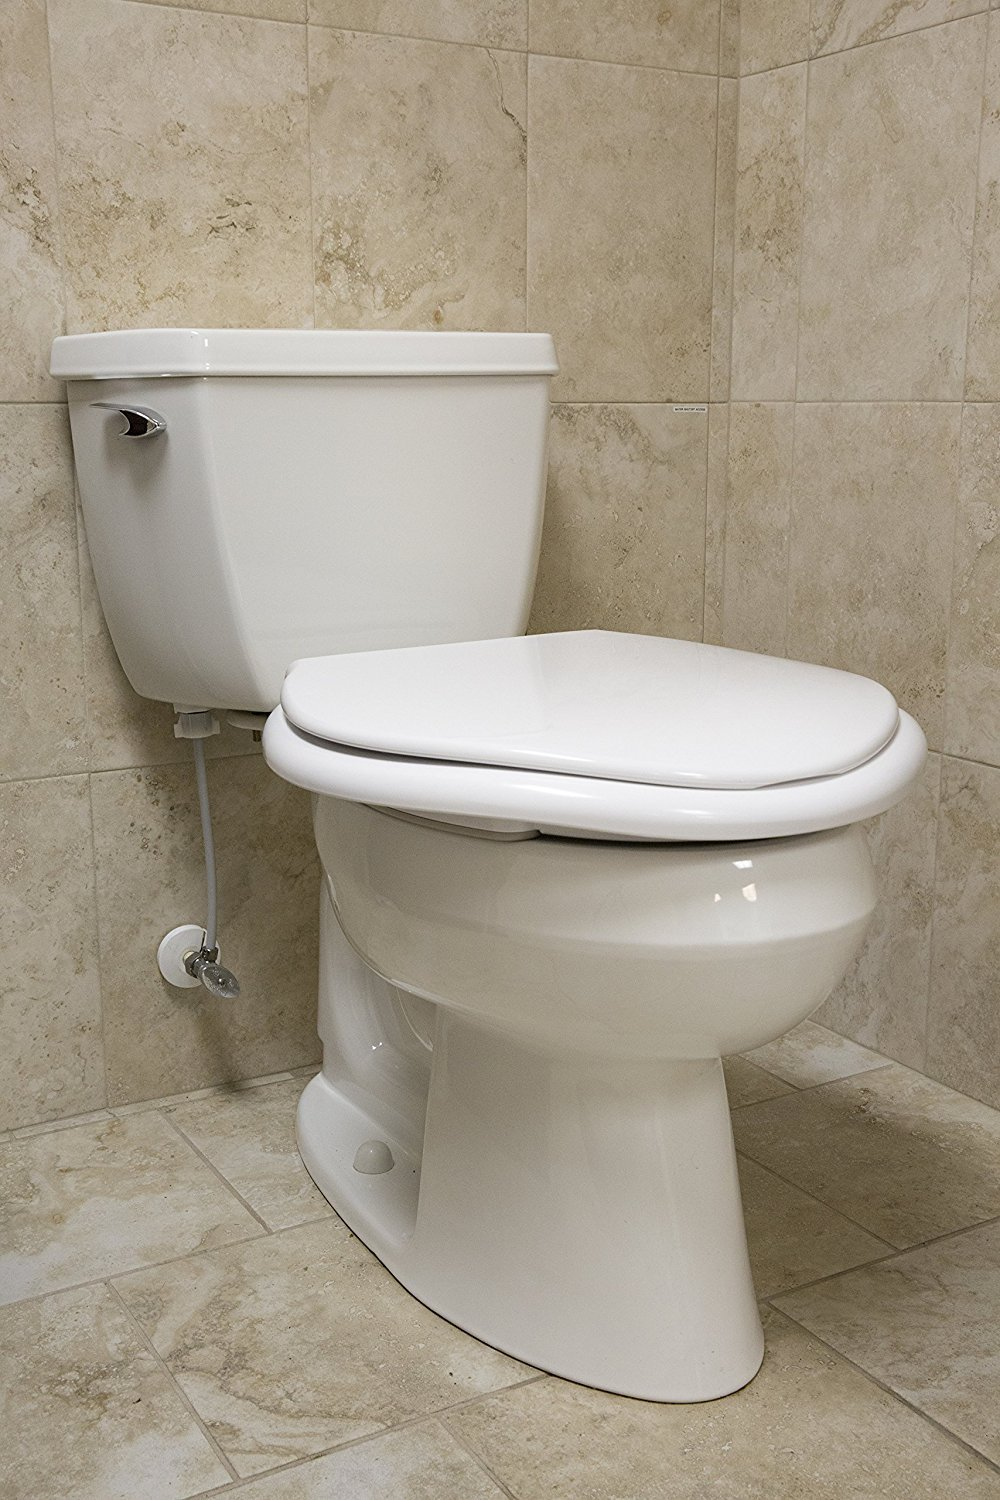 Cool 5 Best Extra Large Toilet Seat Options In 2019 Toiletops Machost Co Dining Chair Design Ideas Machostcouk